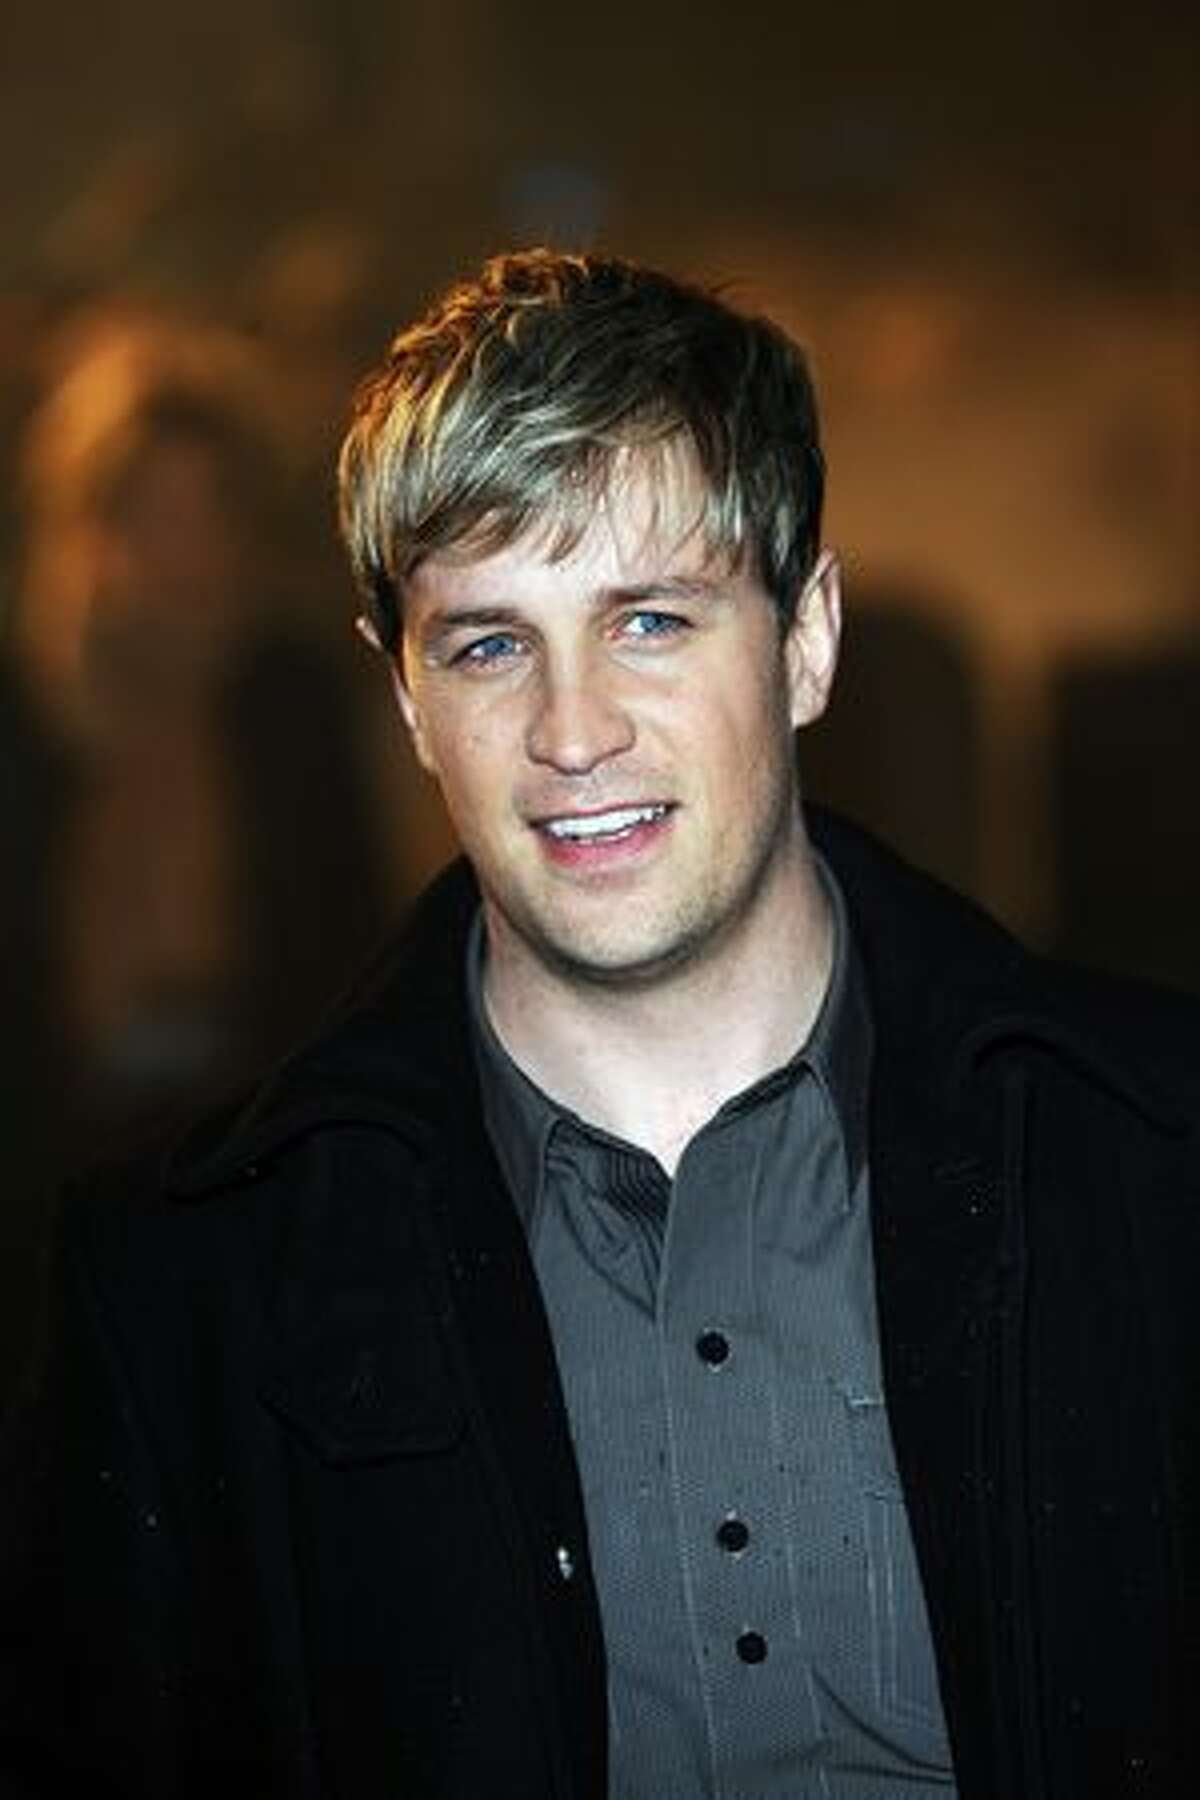 Kian Egan attends the world premiere of Sherlock Holmes at Empire Leicester Square in London, England.